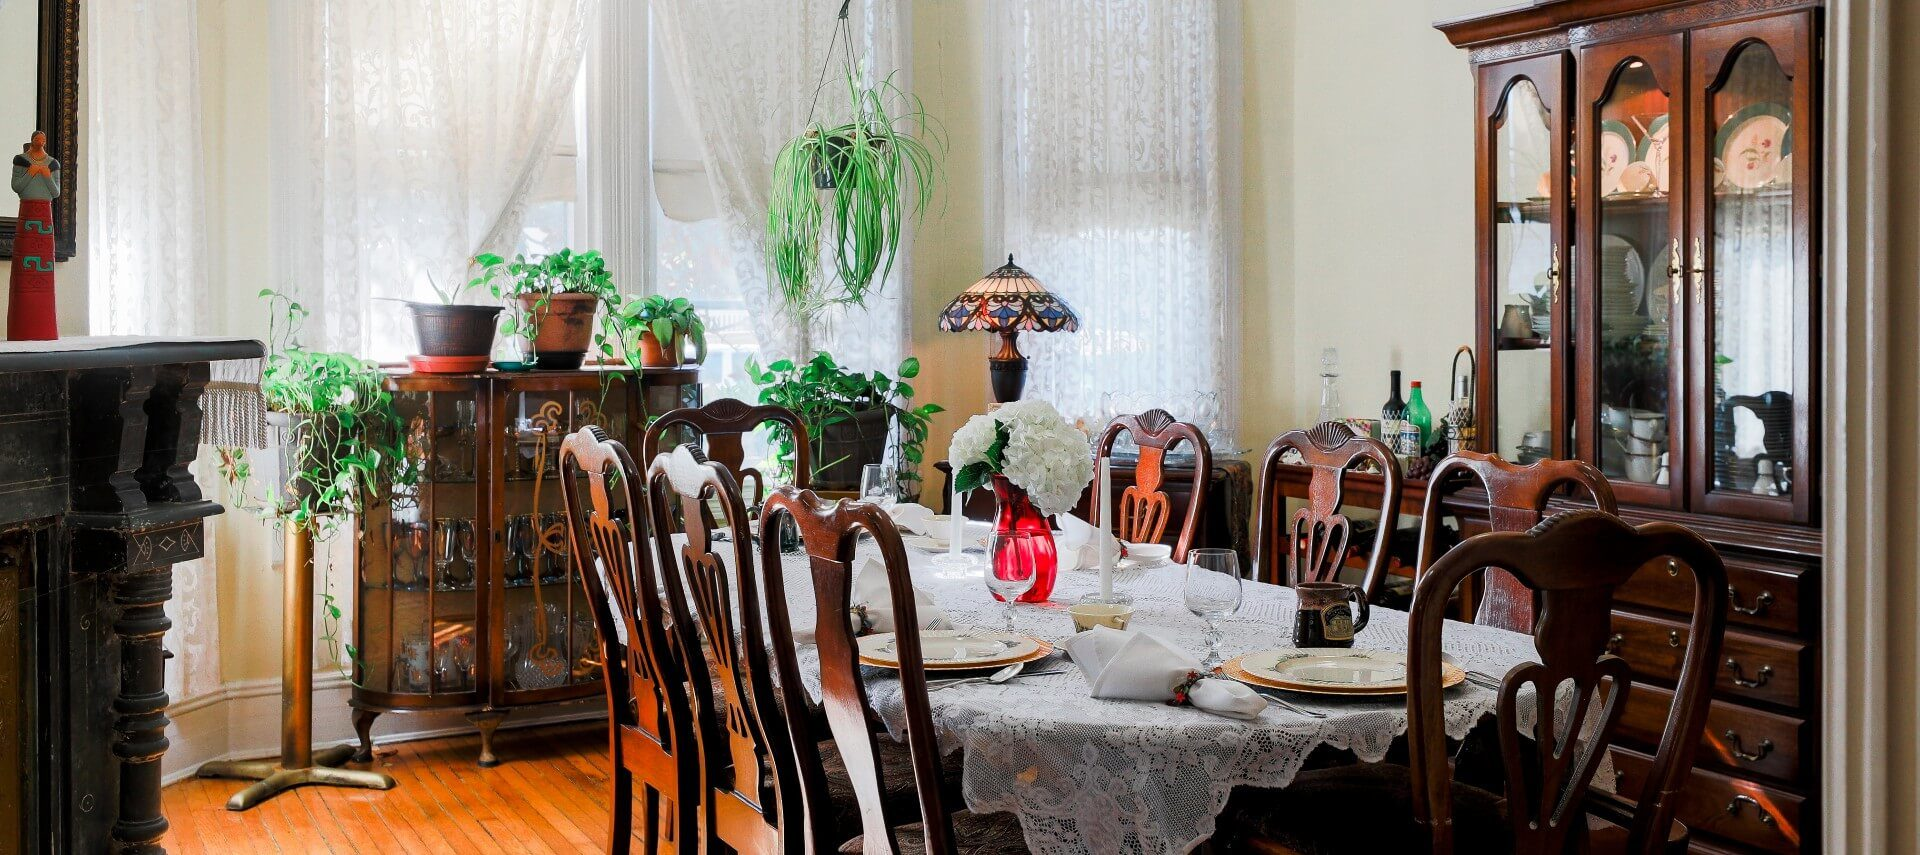 Large dining room with hutches and antique table and 8 chairs, set with lace tablecloth and fine china